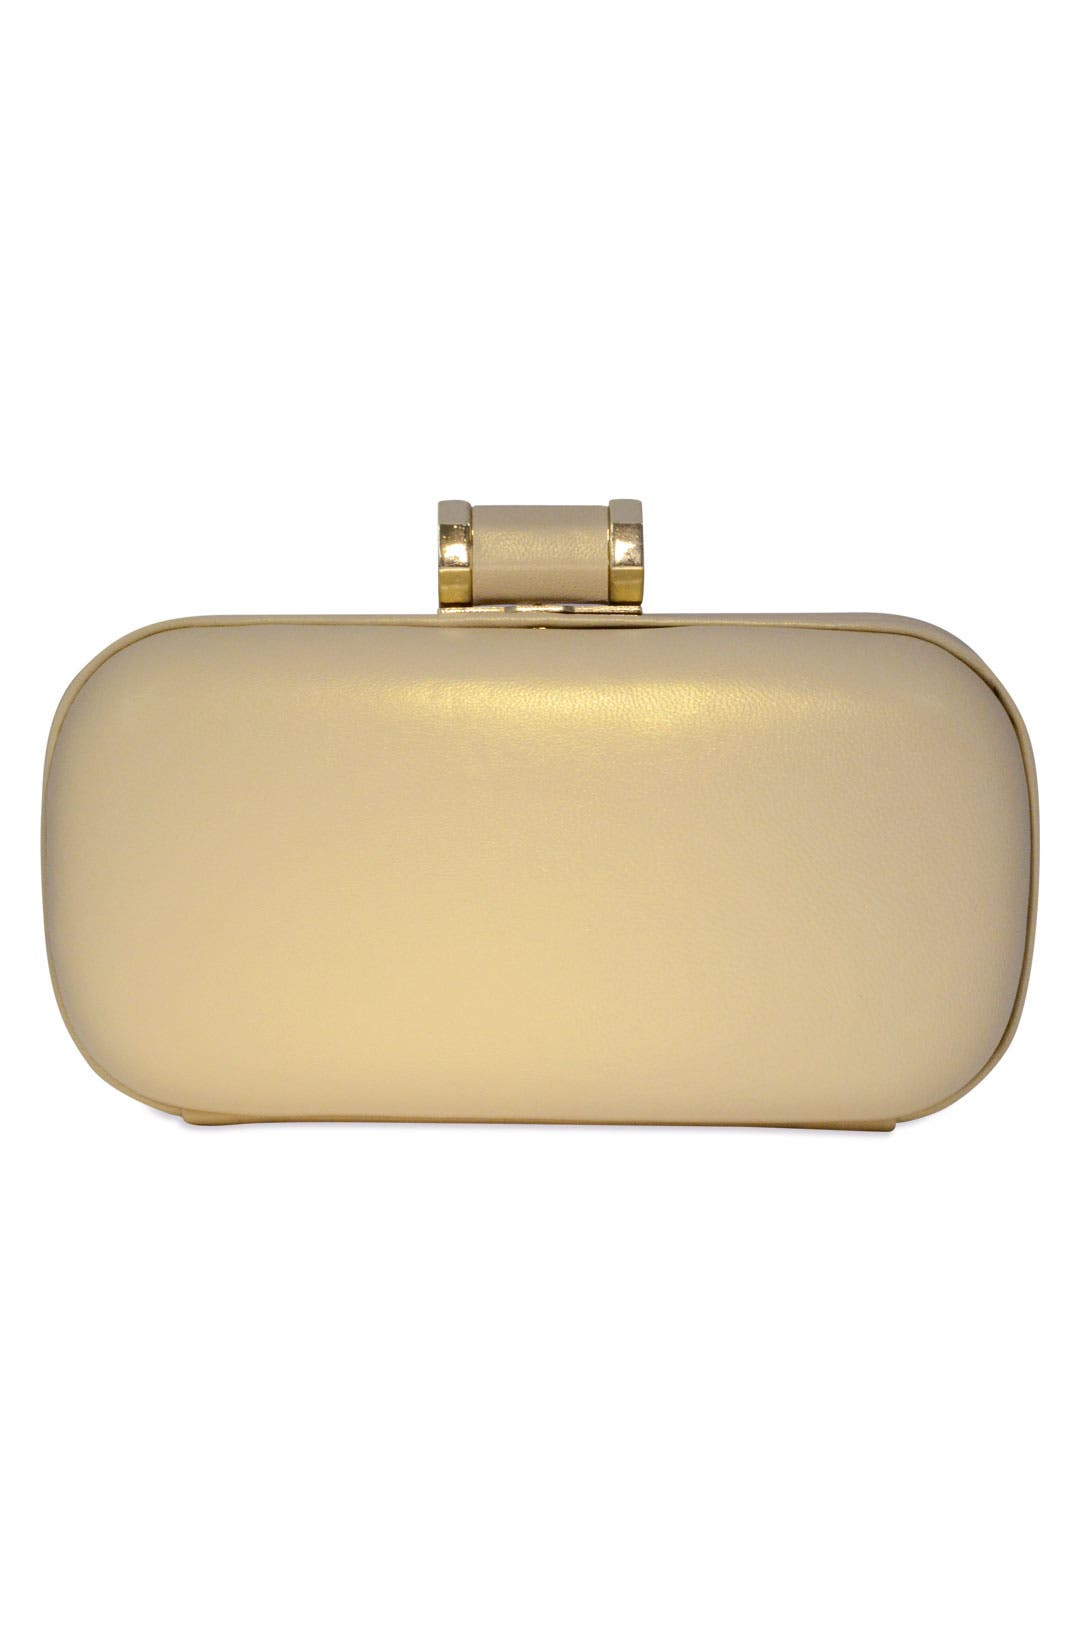 Brushed Gold Clutch by Halston Heritage Handbags